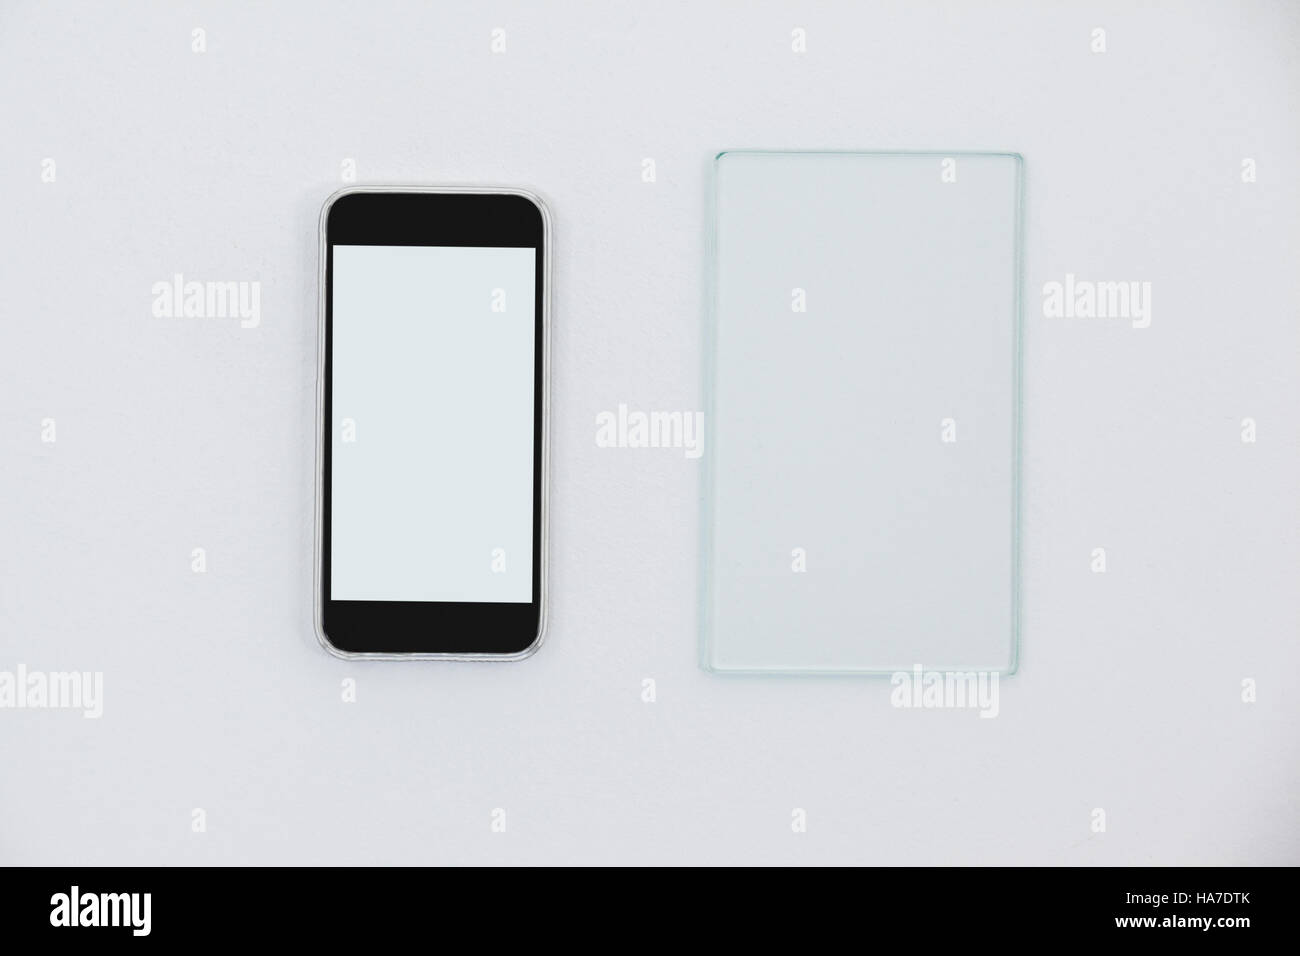 Sheet of glass and mobile phone on white background - Stock Image